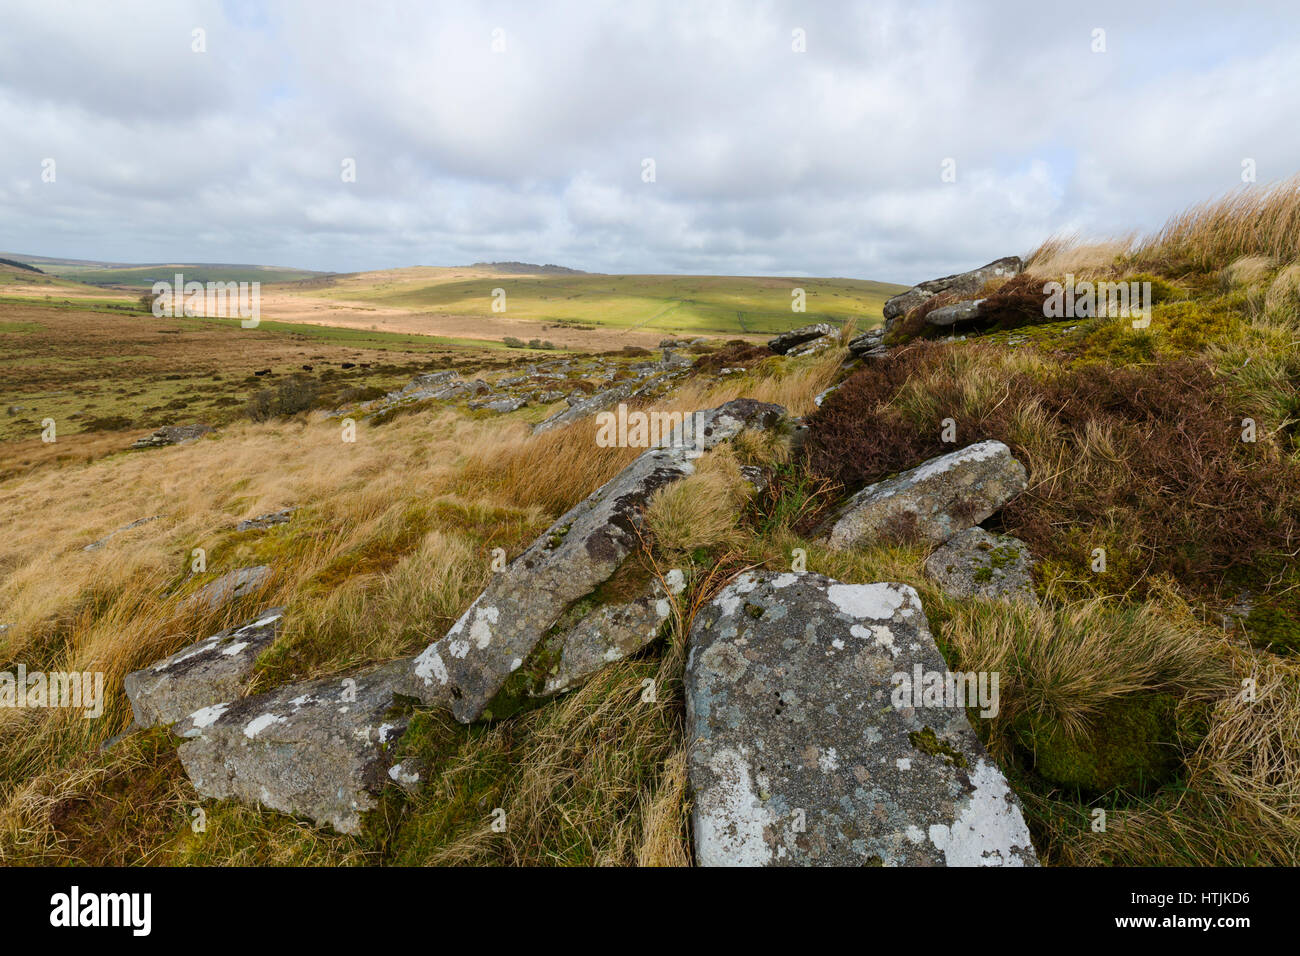 Bodmin Moor North of the village of Minions in the warm afternoon sunshine - Stock Image